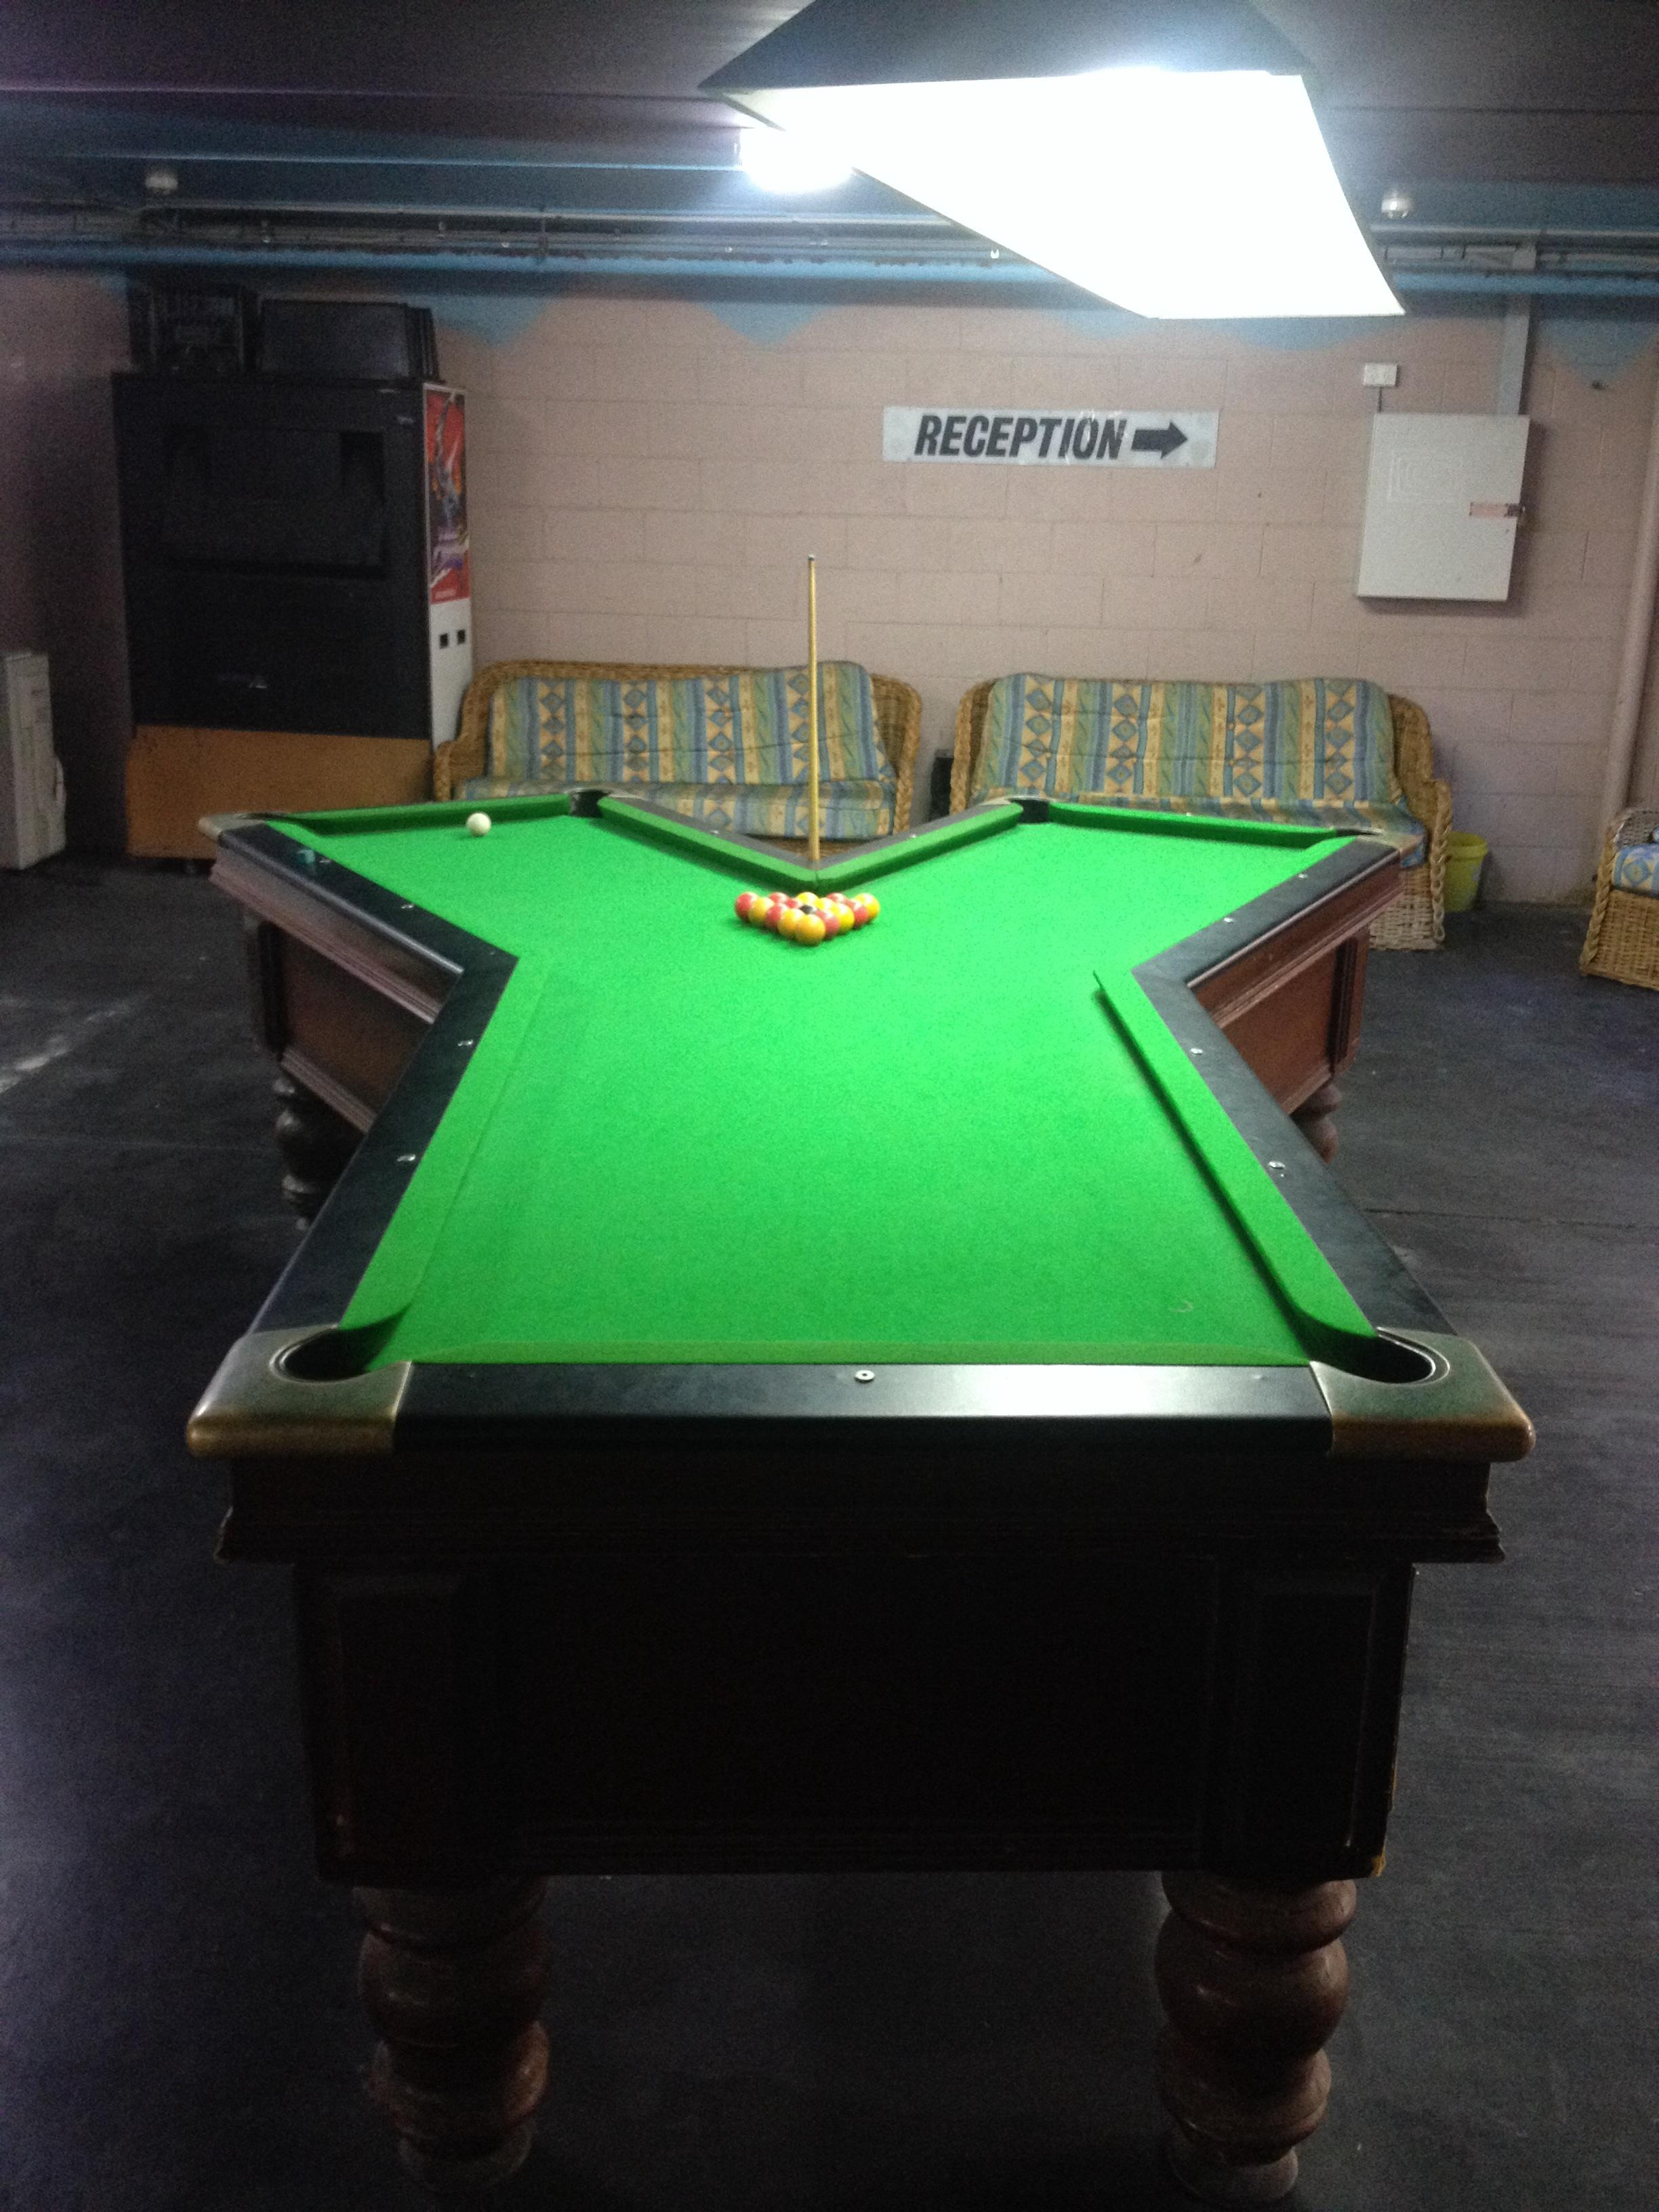 Oddly Shaped Pool Tables That Are Fun To Play On Wow Amazing - Circular pool table